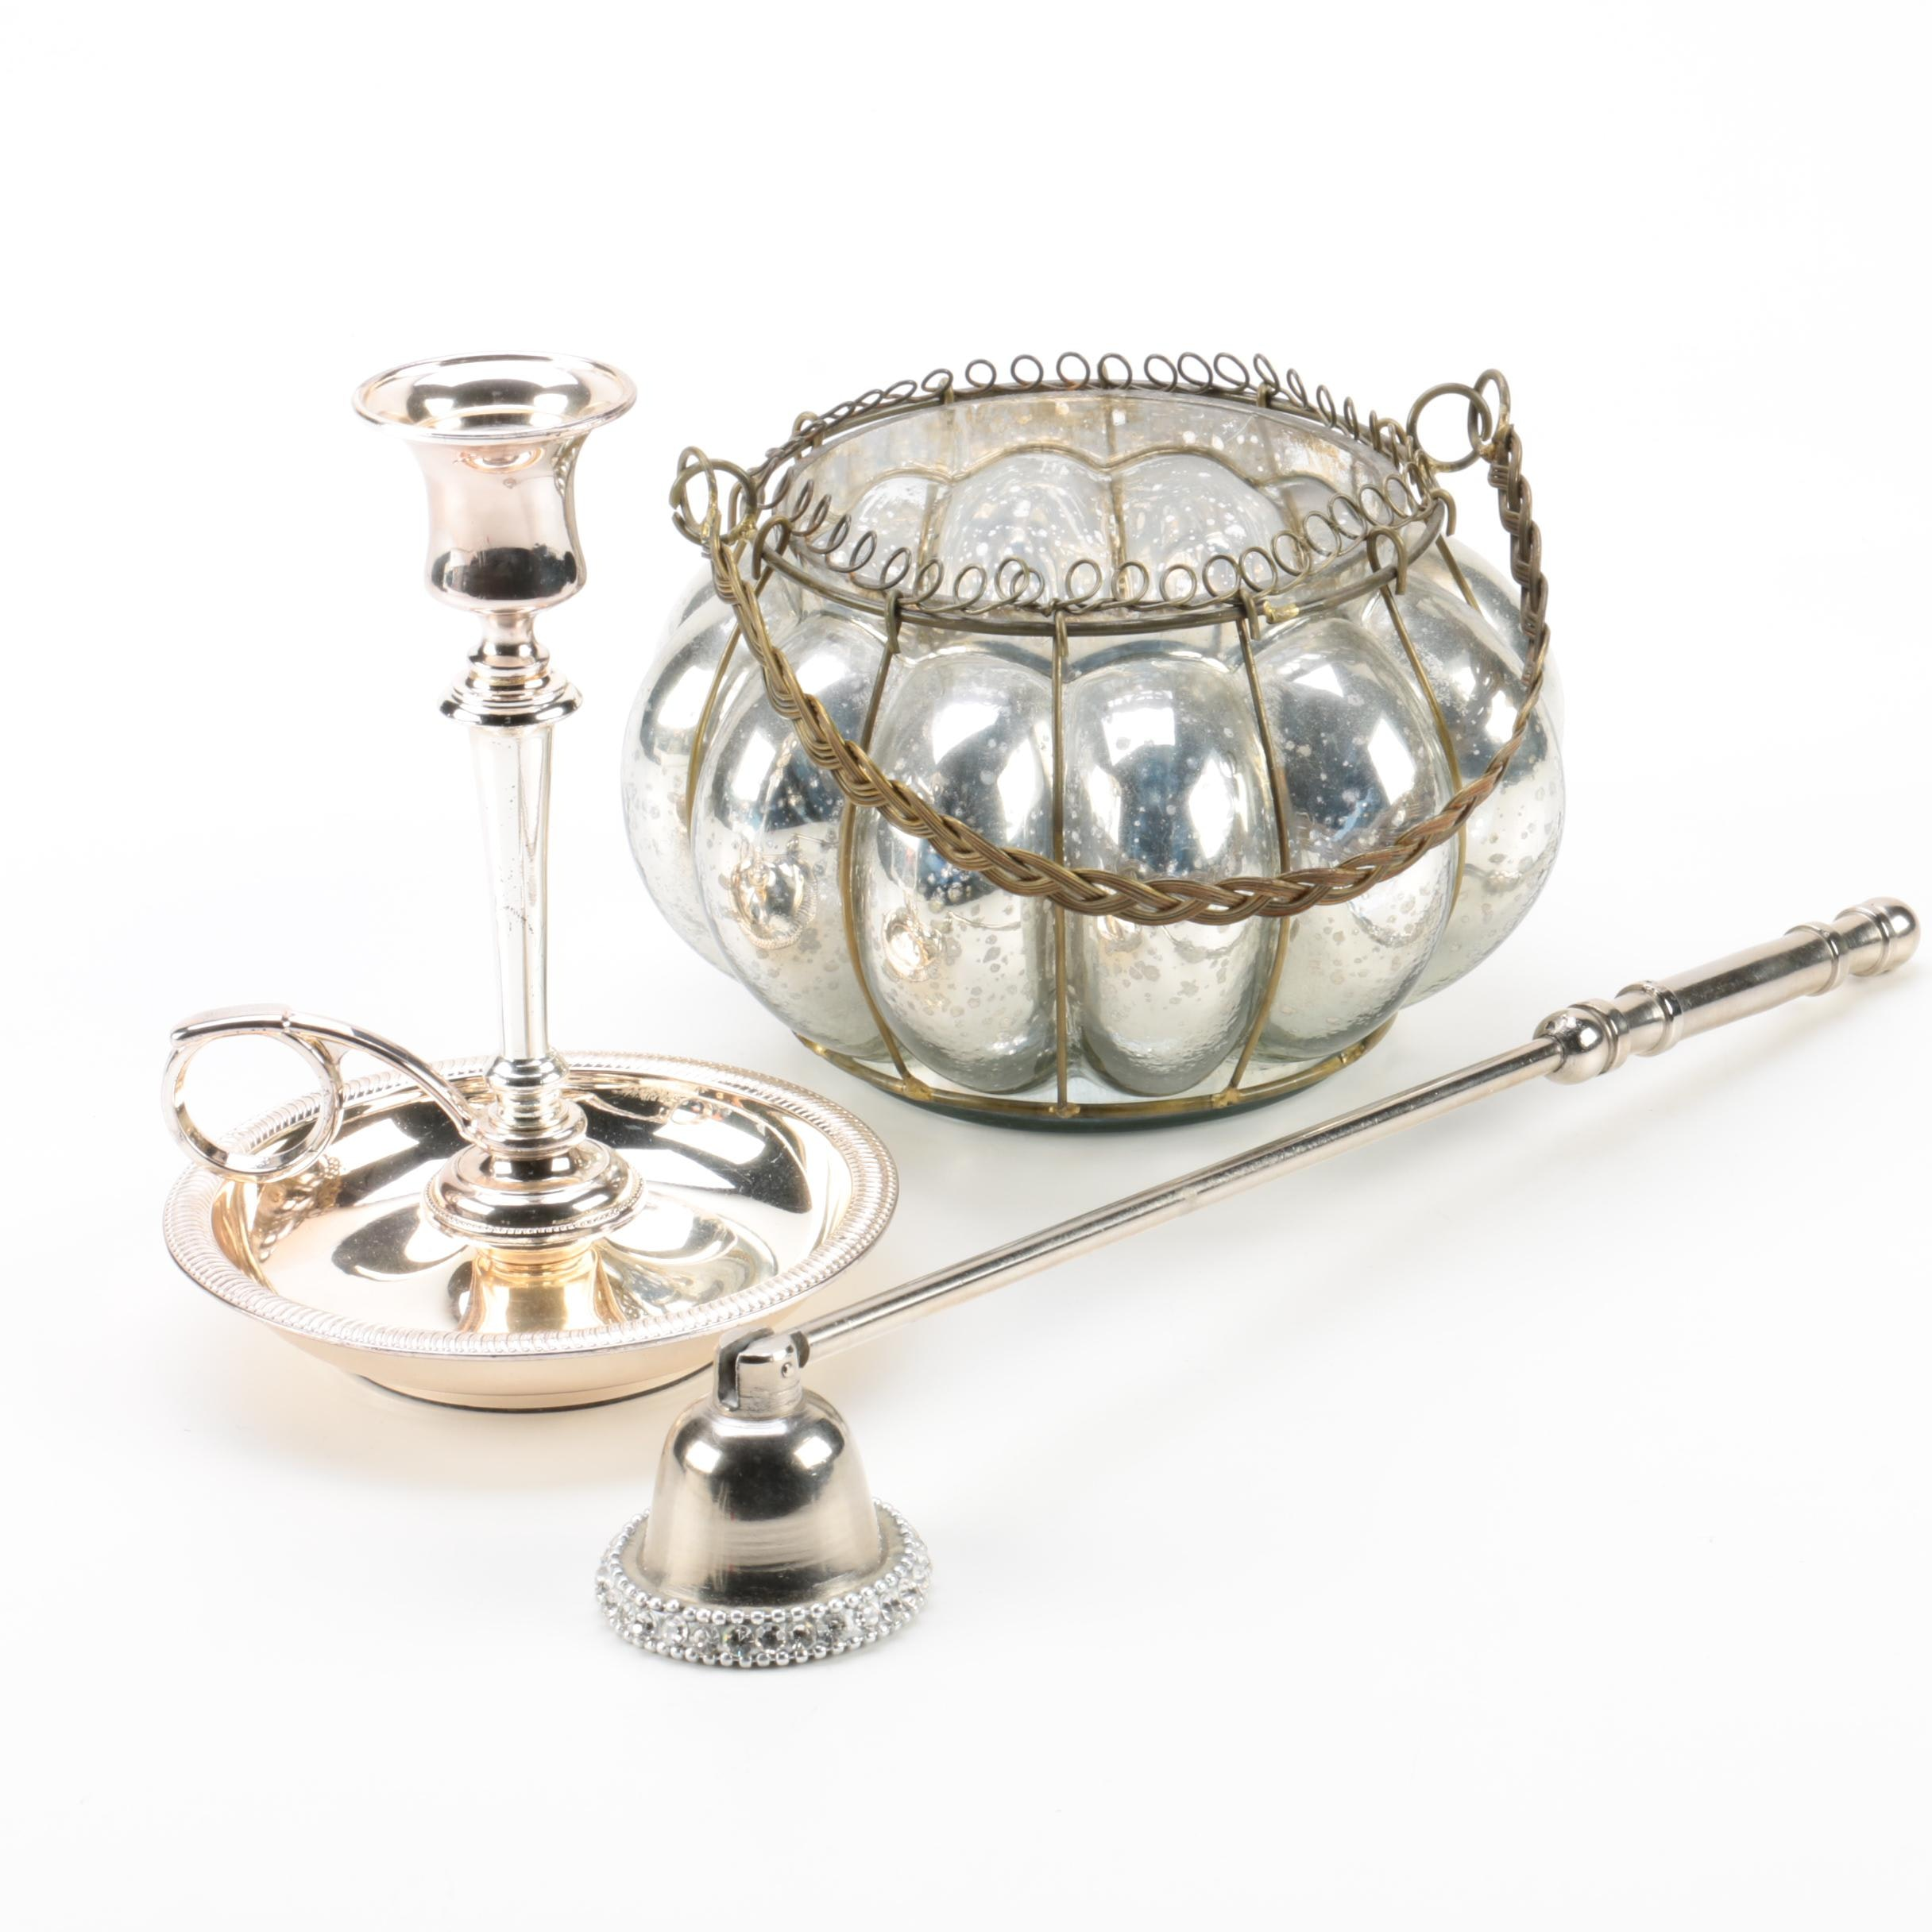 Candle Holders and Snuffer